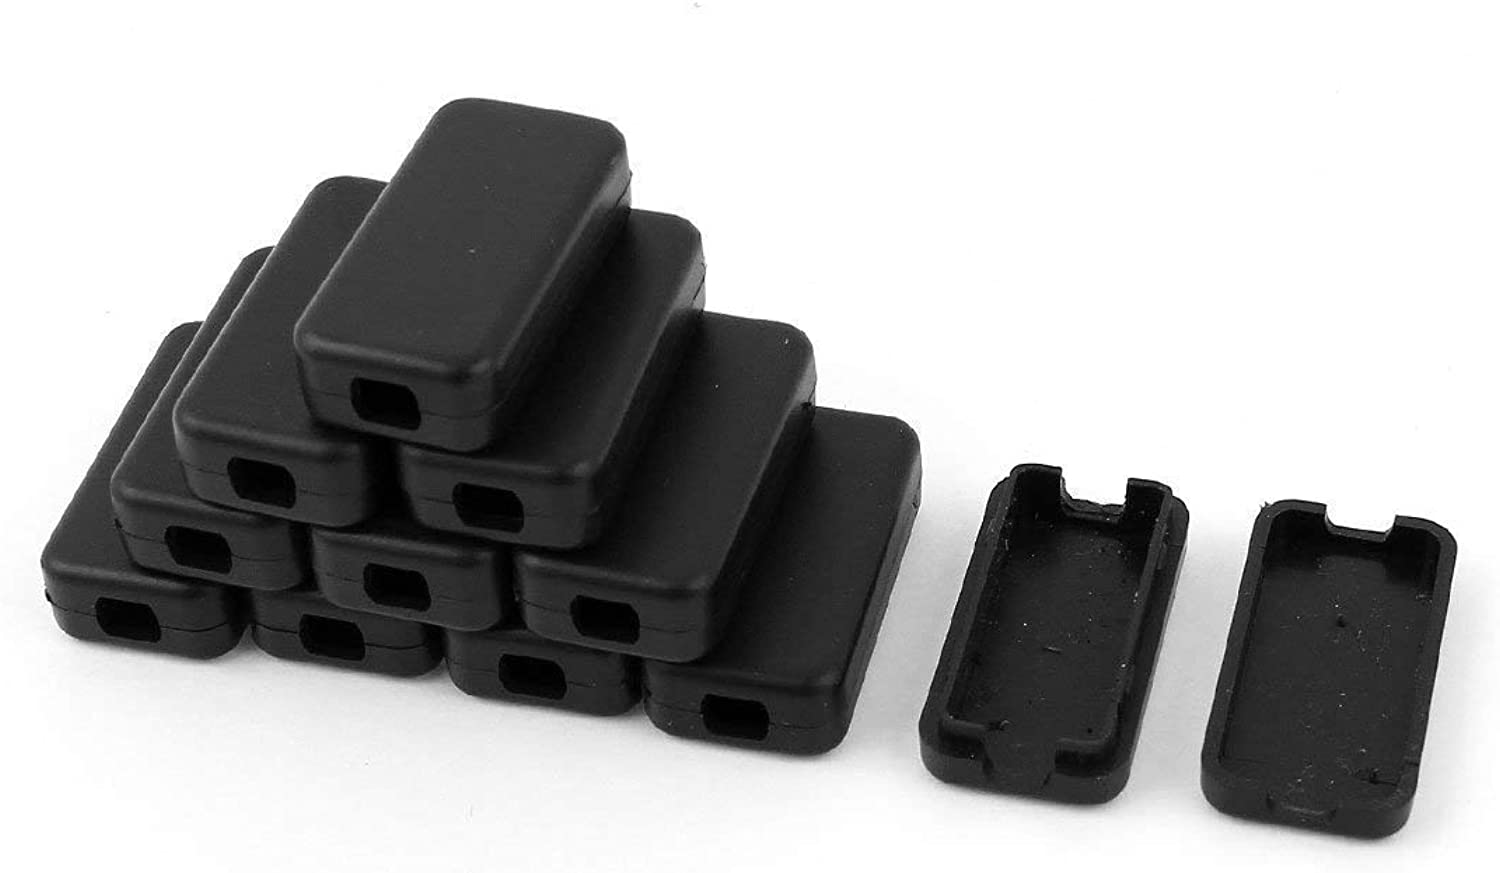 11pcs Plastic Electronic Project Case Junction Box 40mmx20mmx11mm